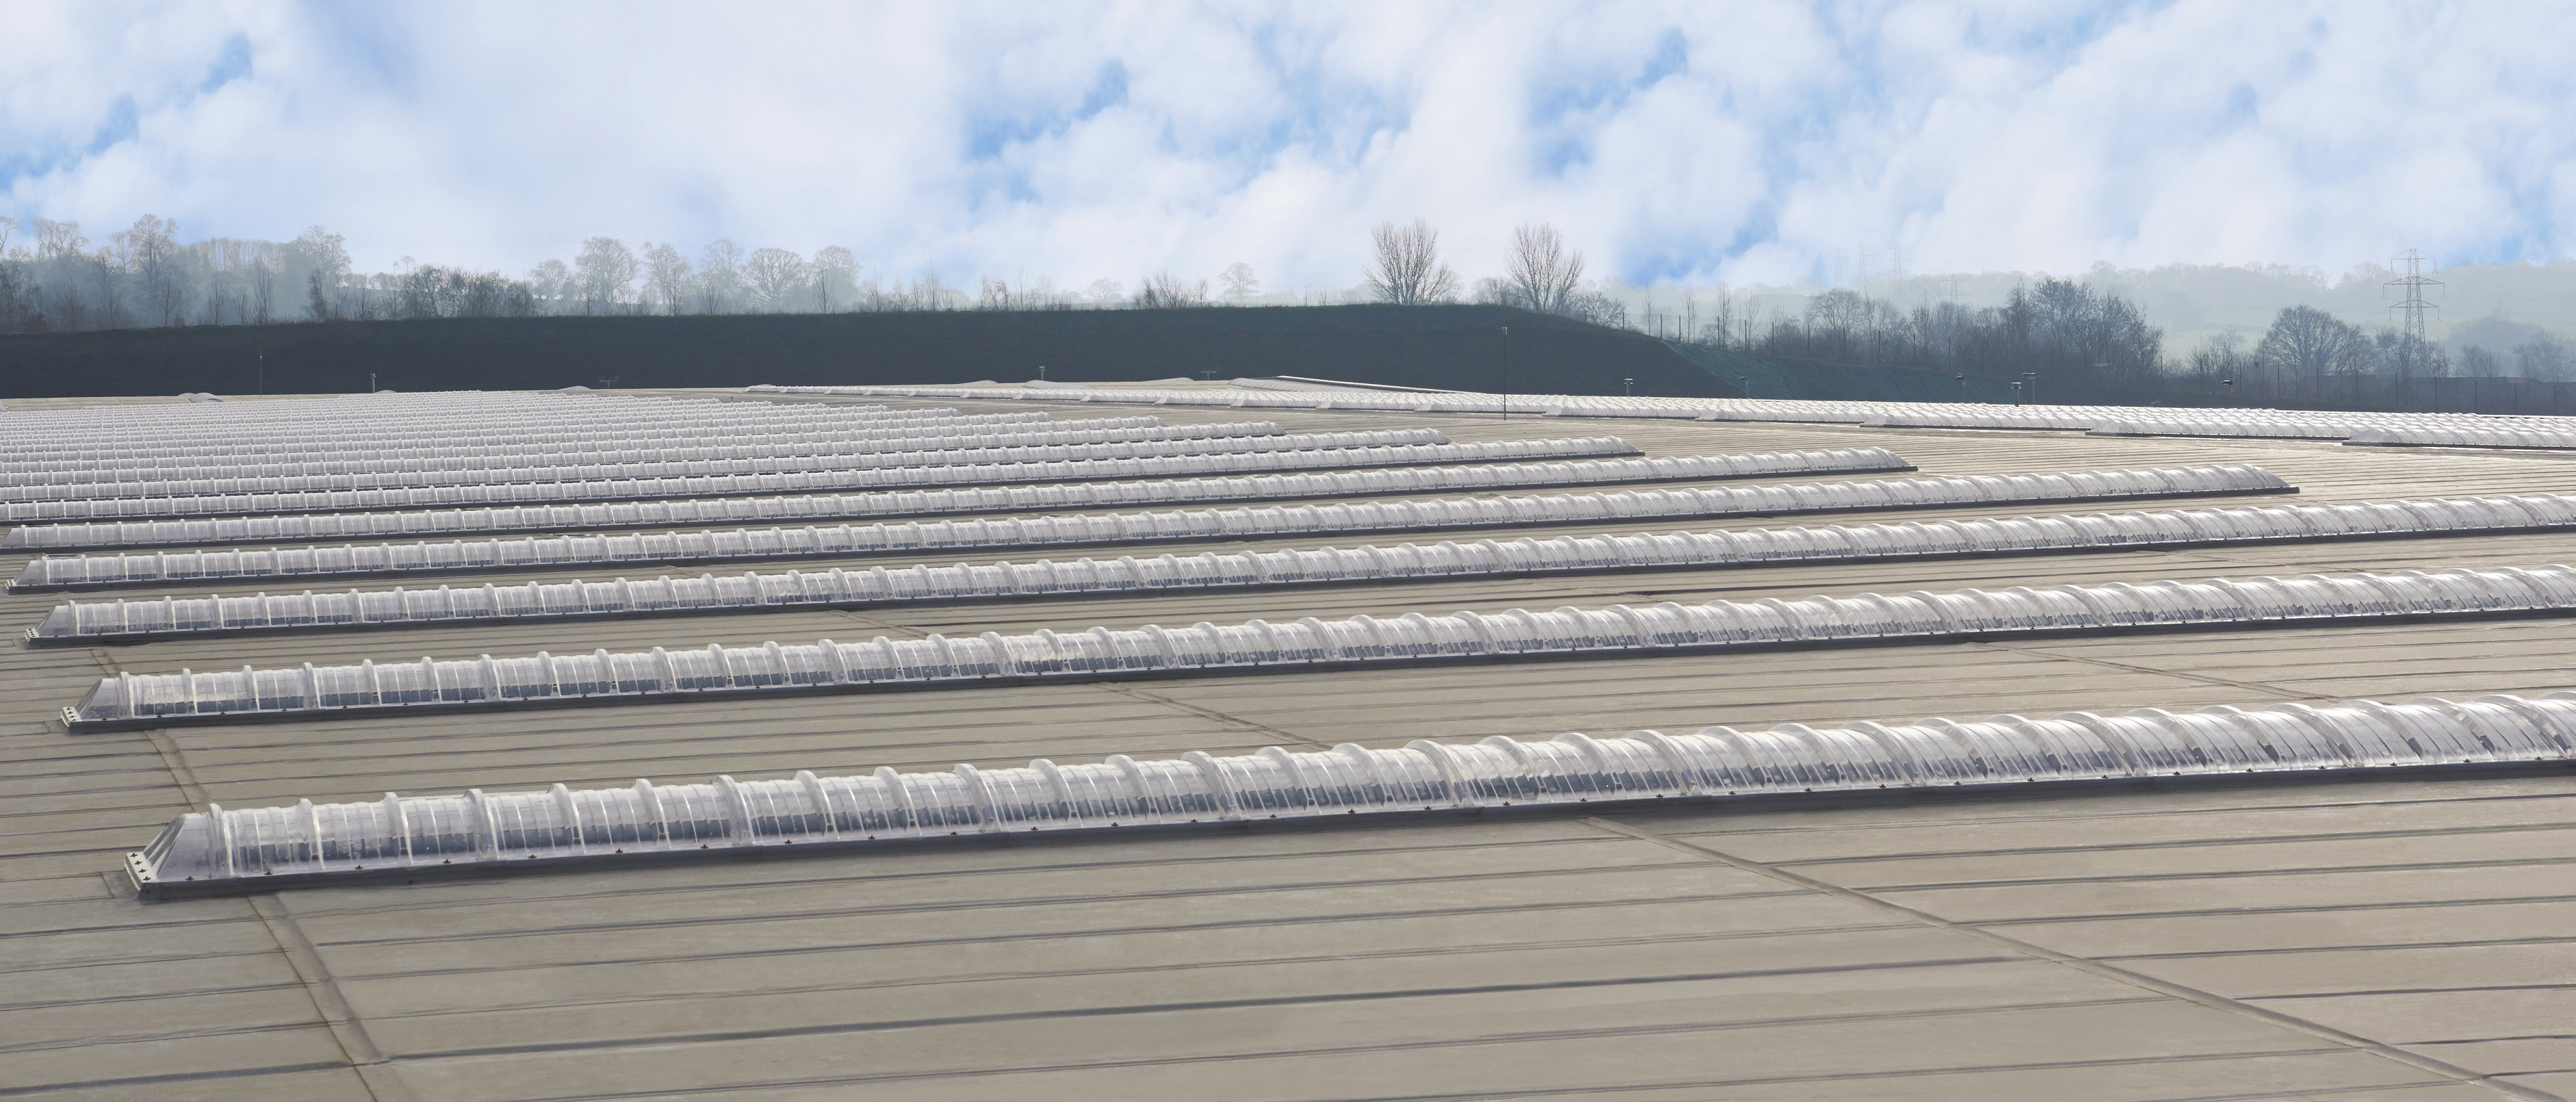 Topdek flat roof panel system